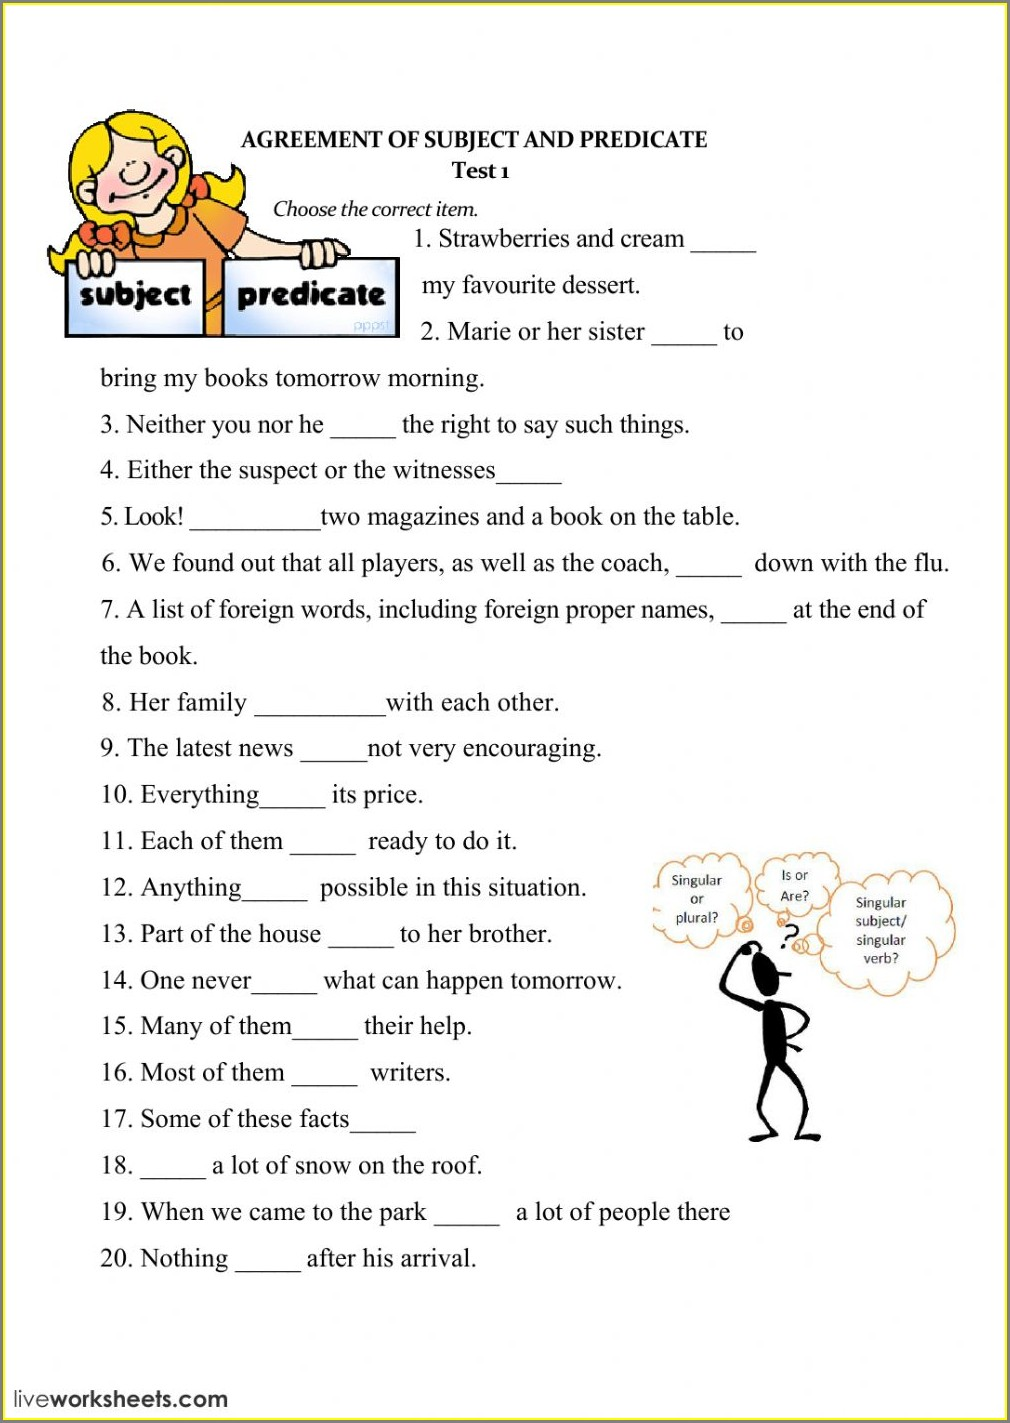 Subject Verb Agreement Worksheets For Grade 5 With Answers